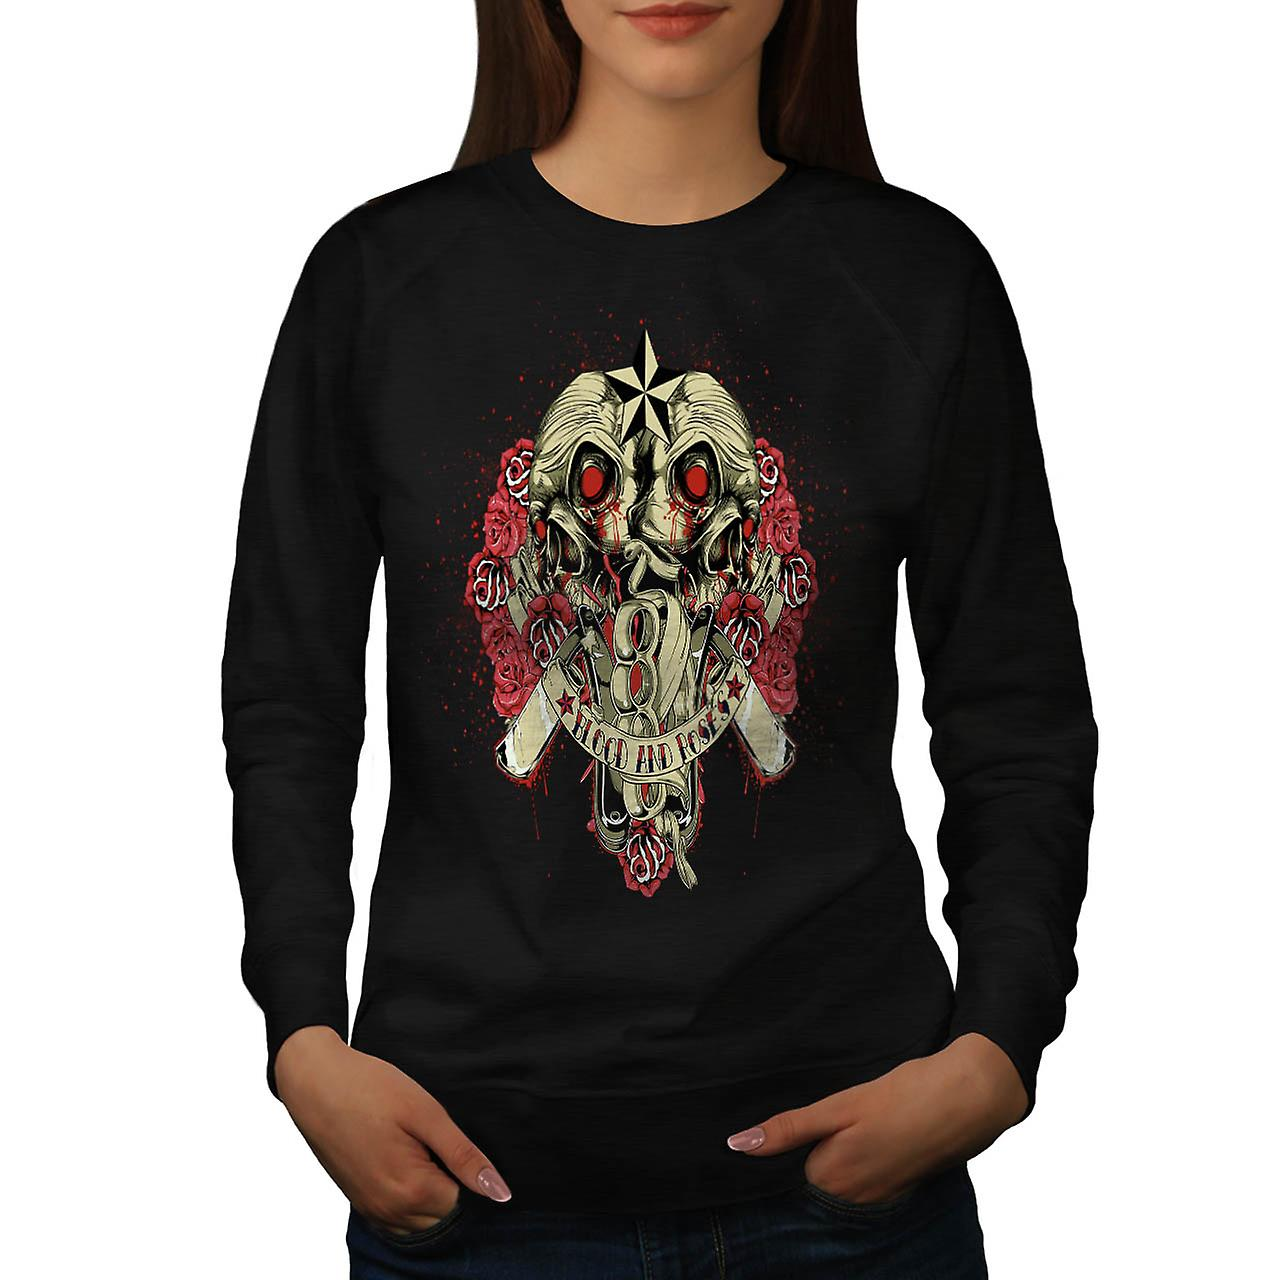 Blood And Roses Fear Flower Love Women Black Sweatshirt | Wellcoda